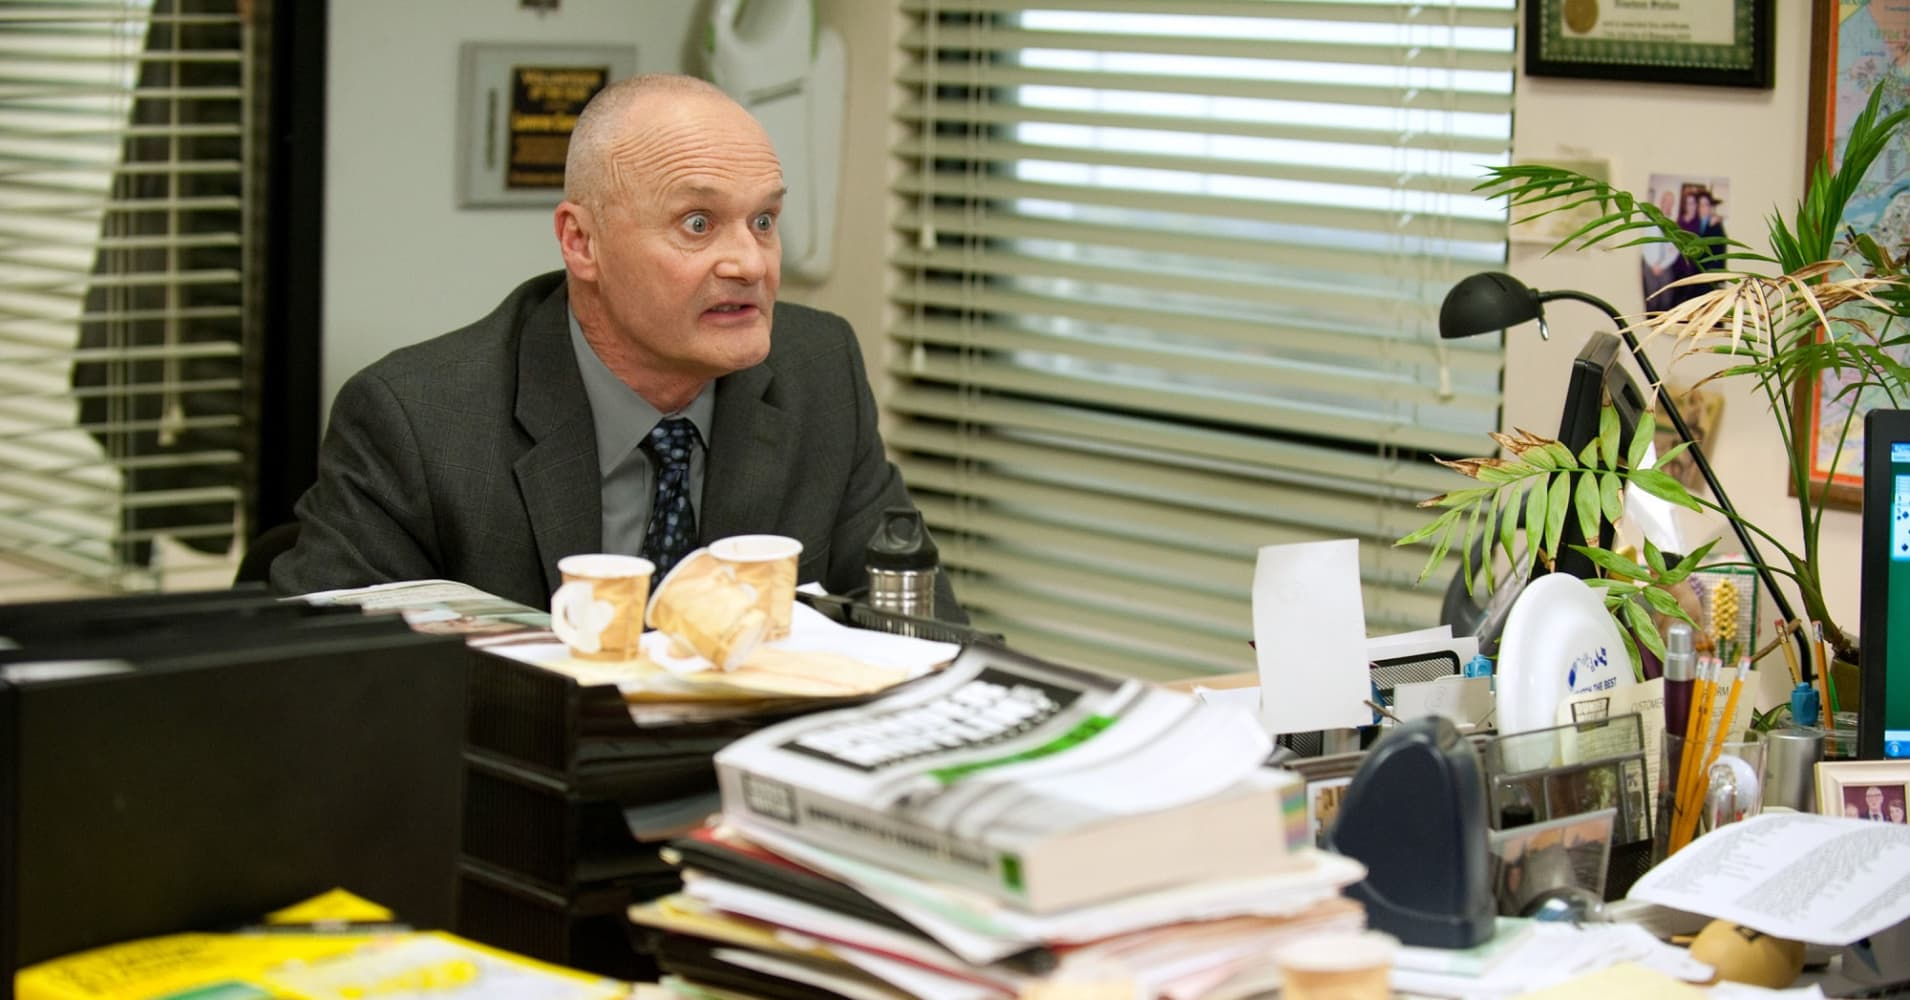 Creed Bratton in NBC's The Office